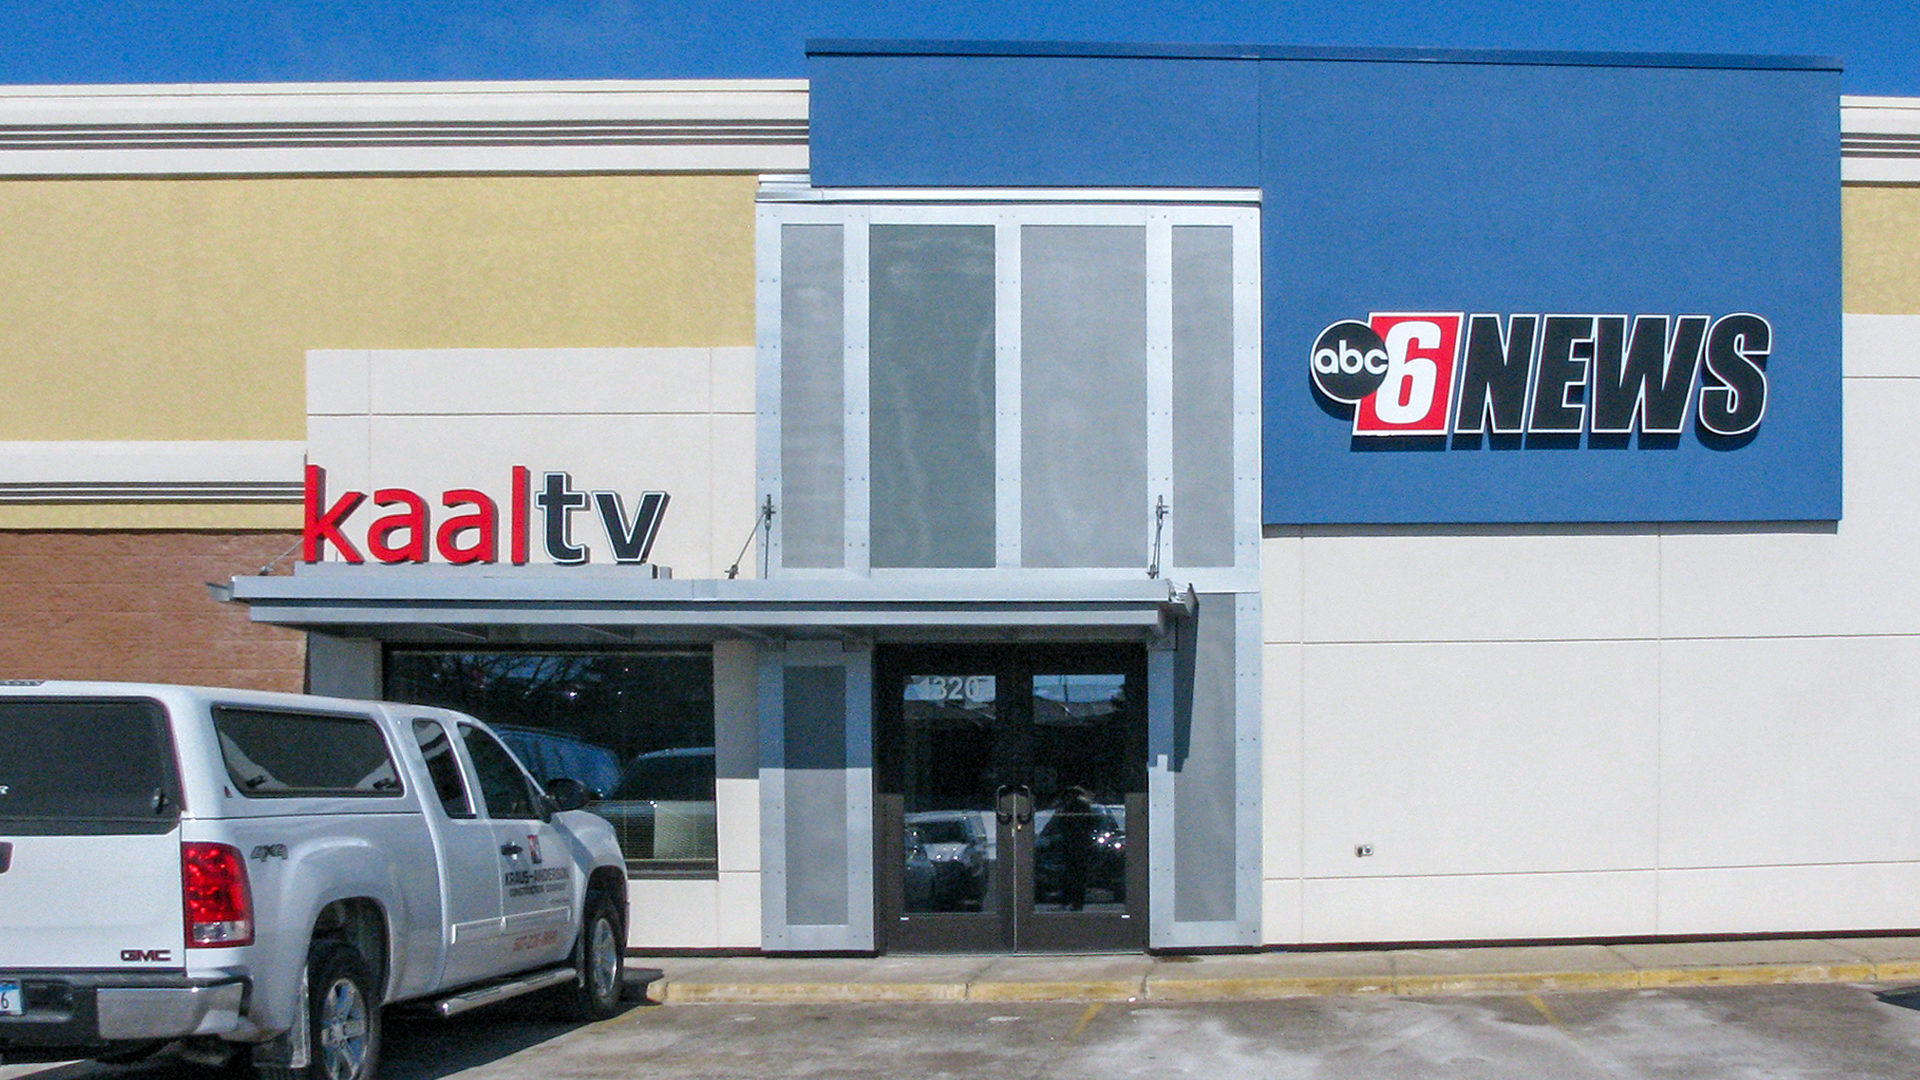 KAAL TV Studio Rochester ABC 6 News Exterior Entrance View